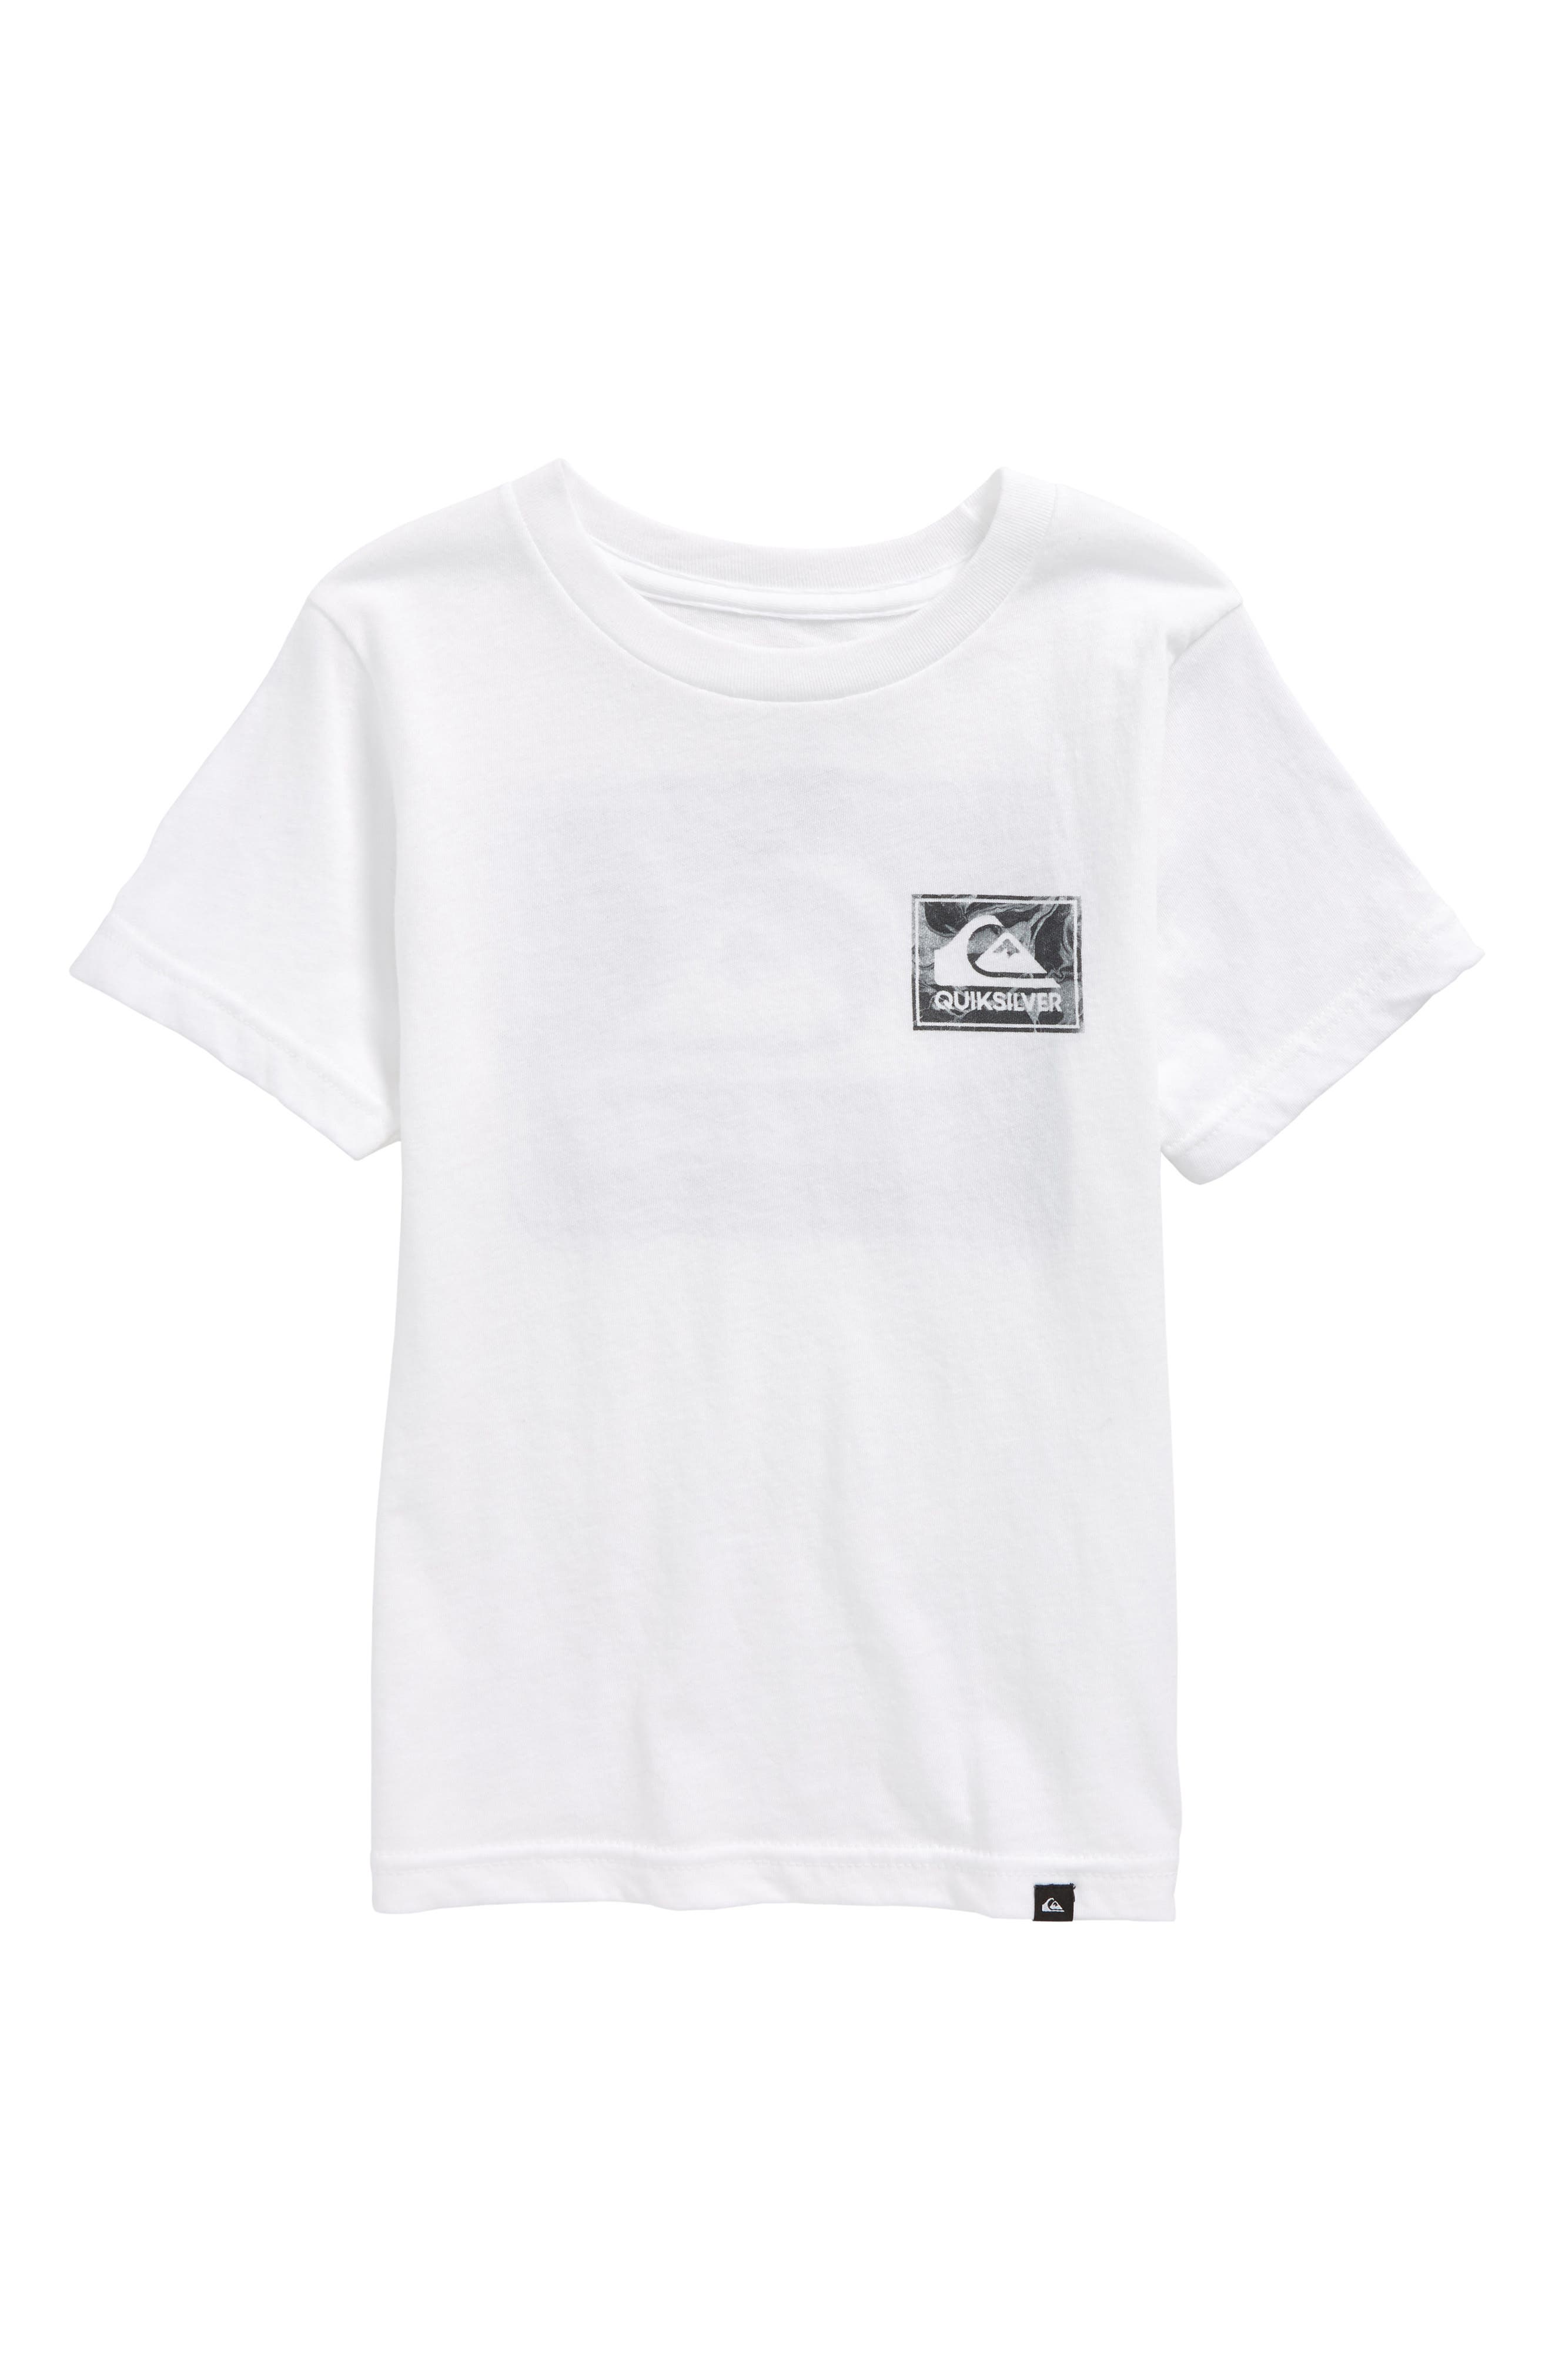 Volcano Blues T-Shirt,                         Main,                         color, White